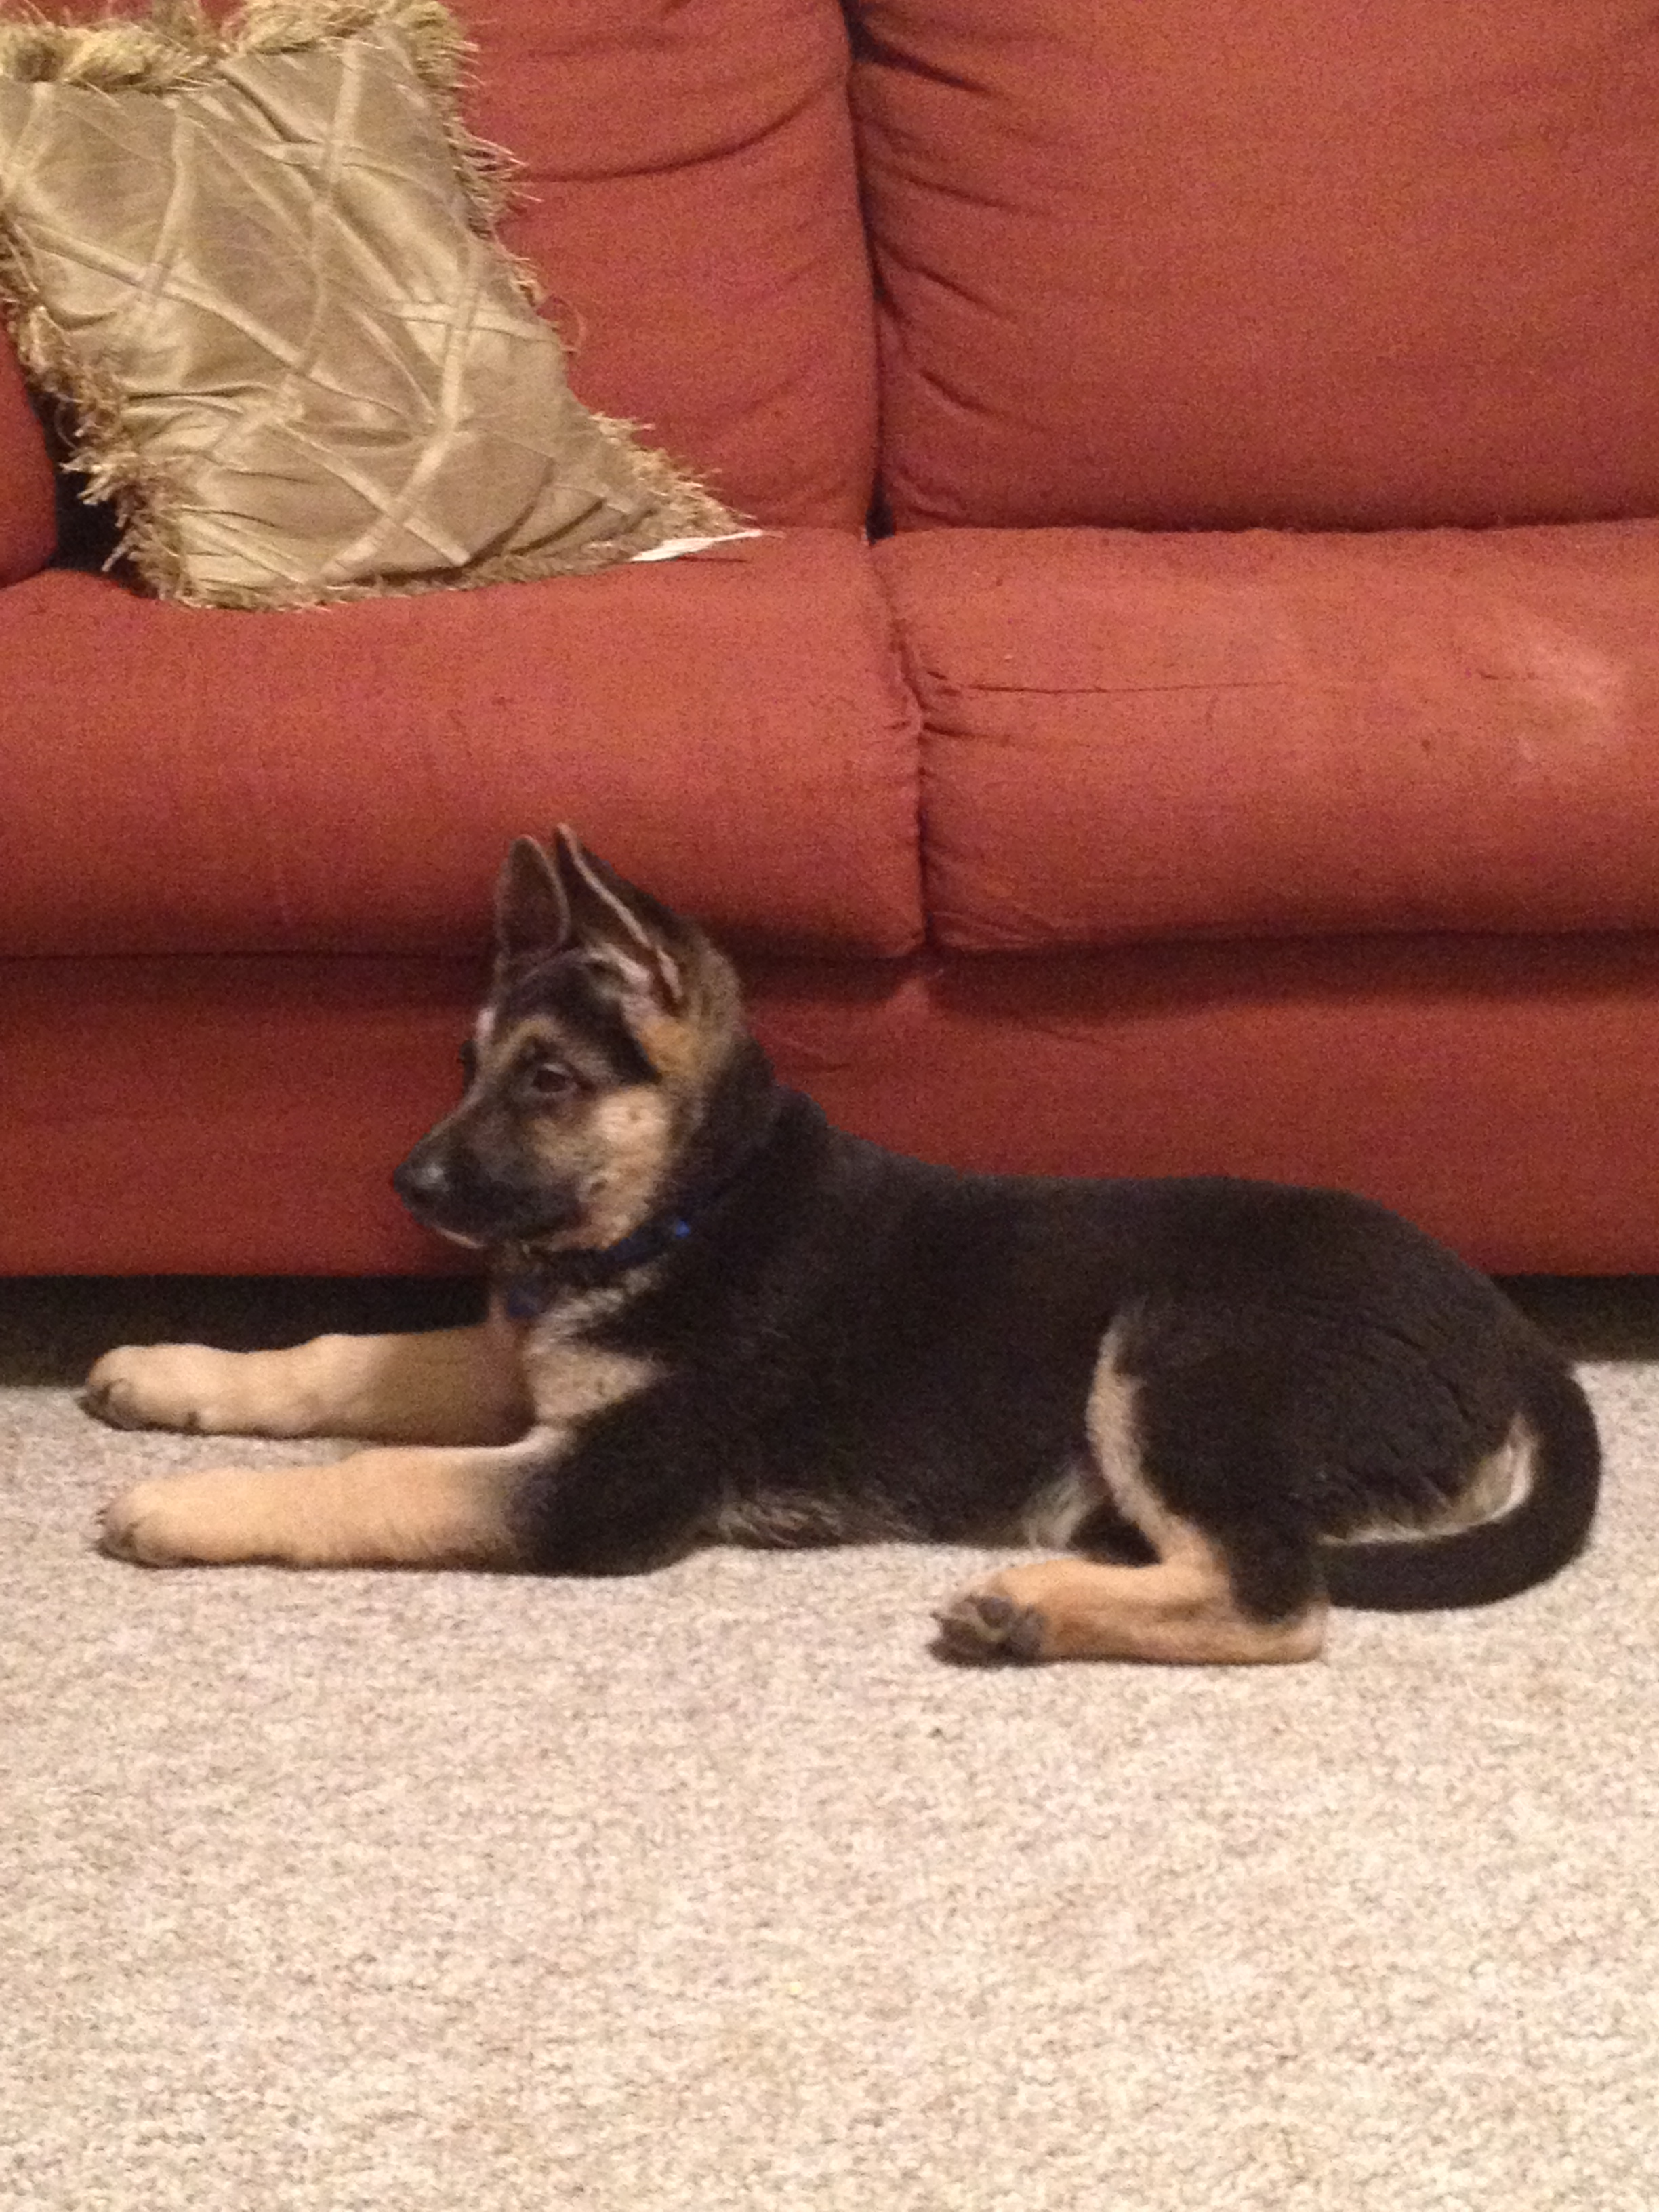 German Shepherd's Ears Not Standing Up! What Can I Do?